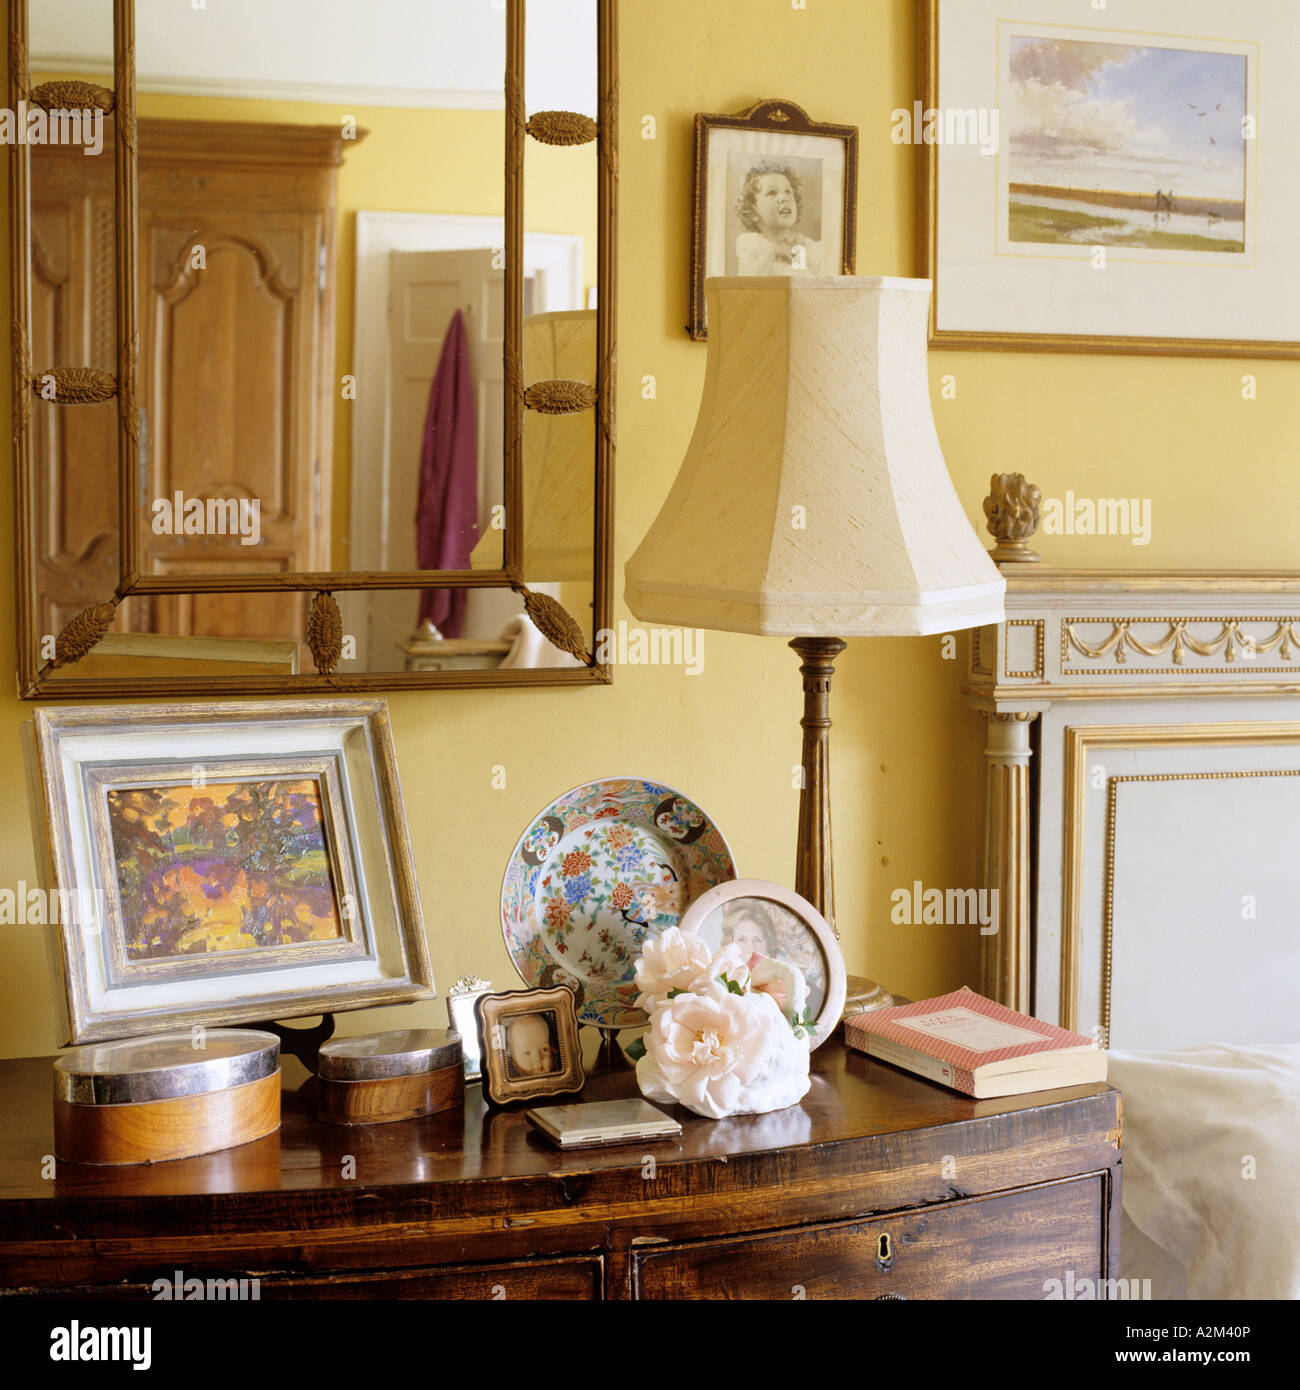 Mirror Above Bedside Table With Lamp And Ornamental Display Stock Photo Alamy